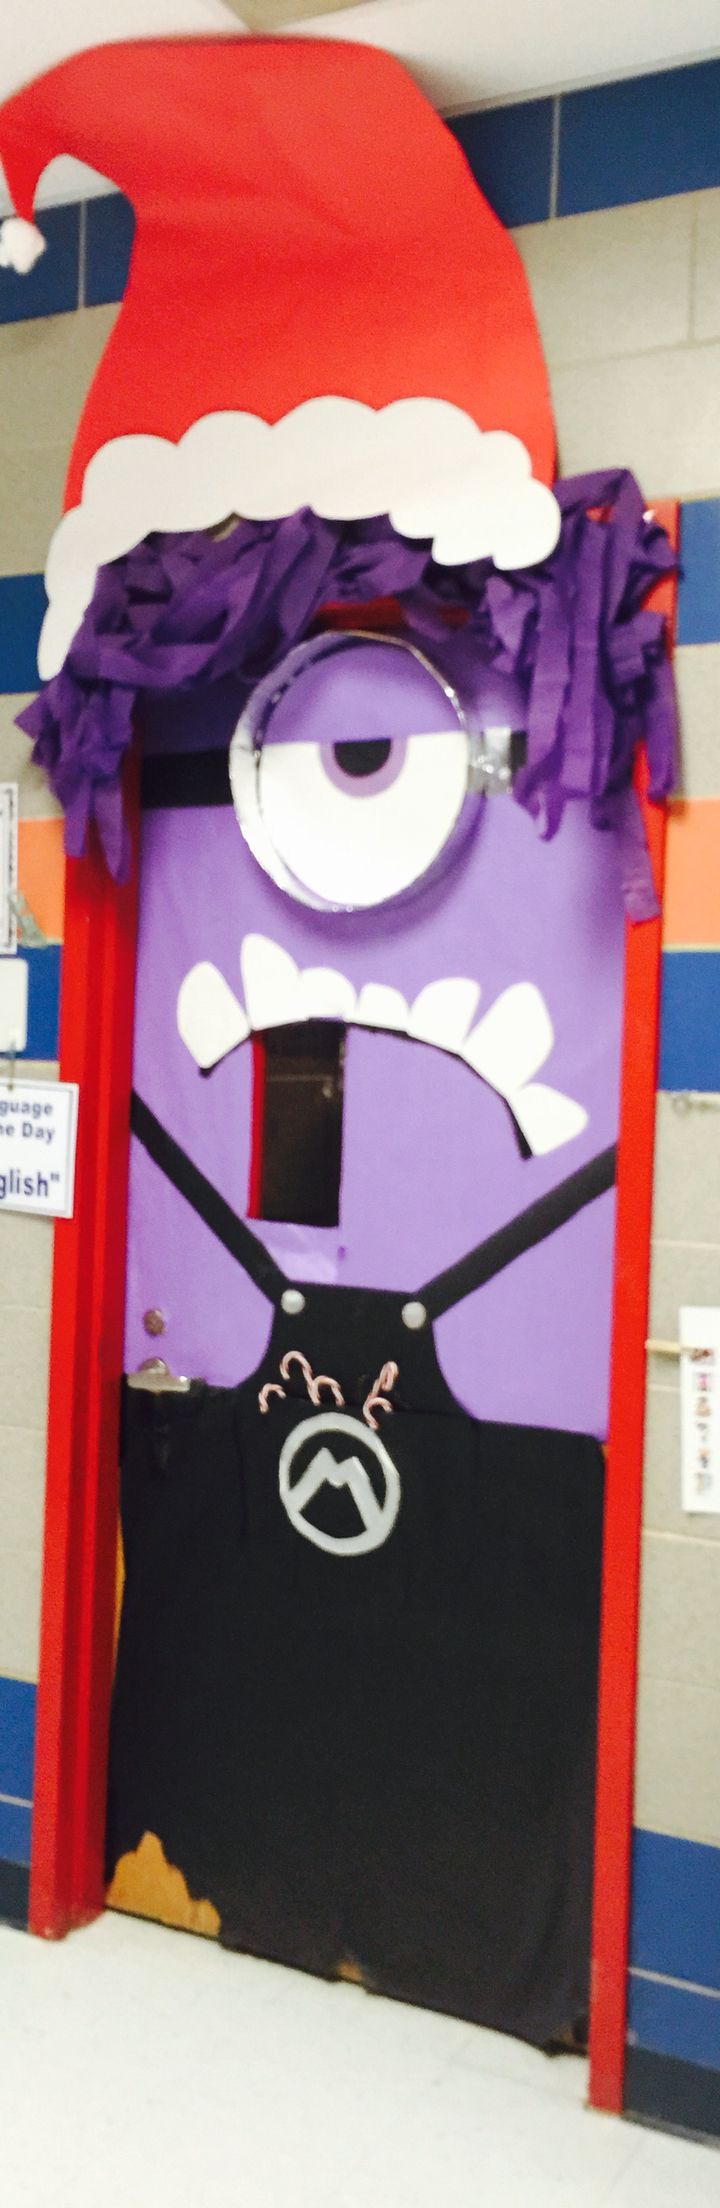 Minion with Christmas hat. Door decor